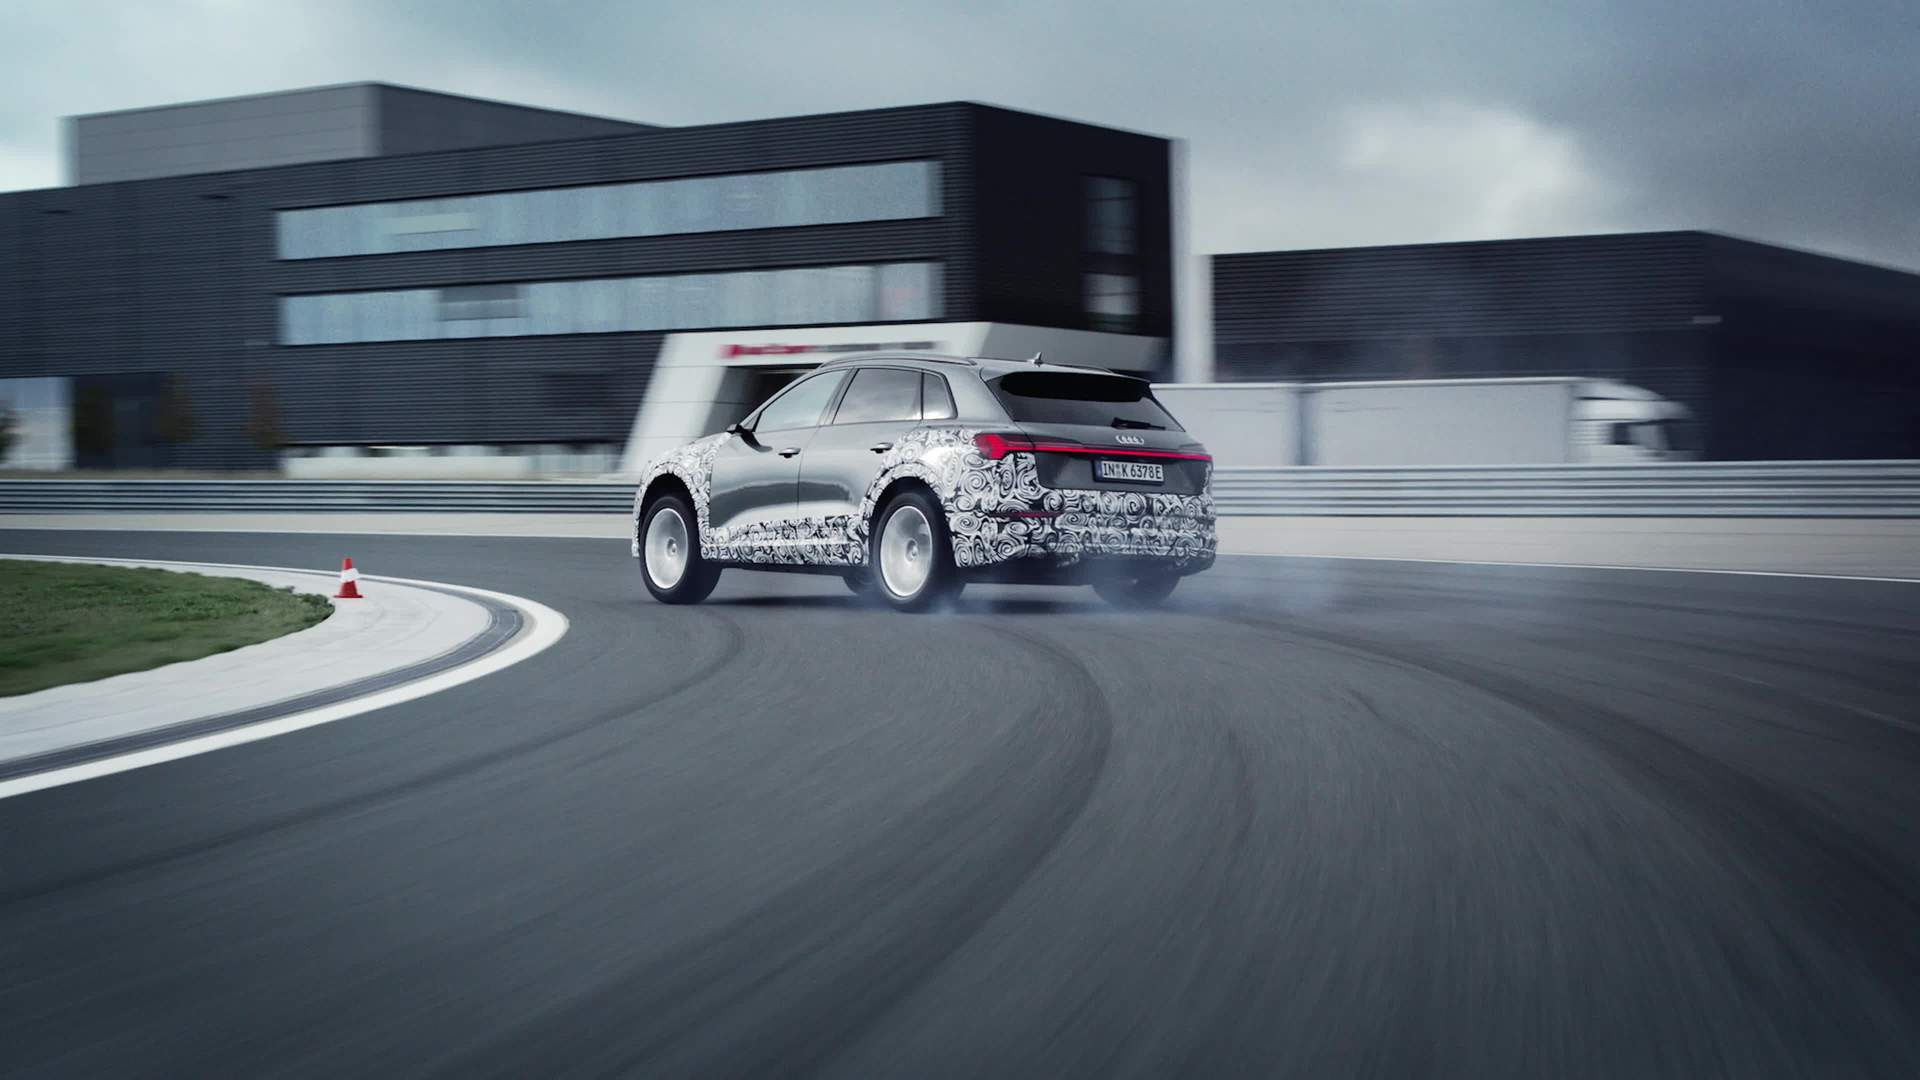 Audi e-tron S prototype – The Drift